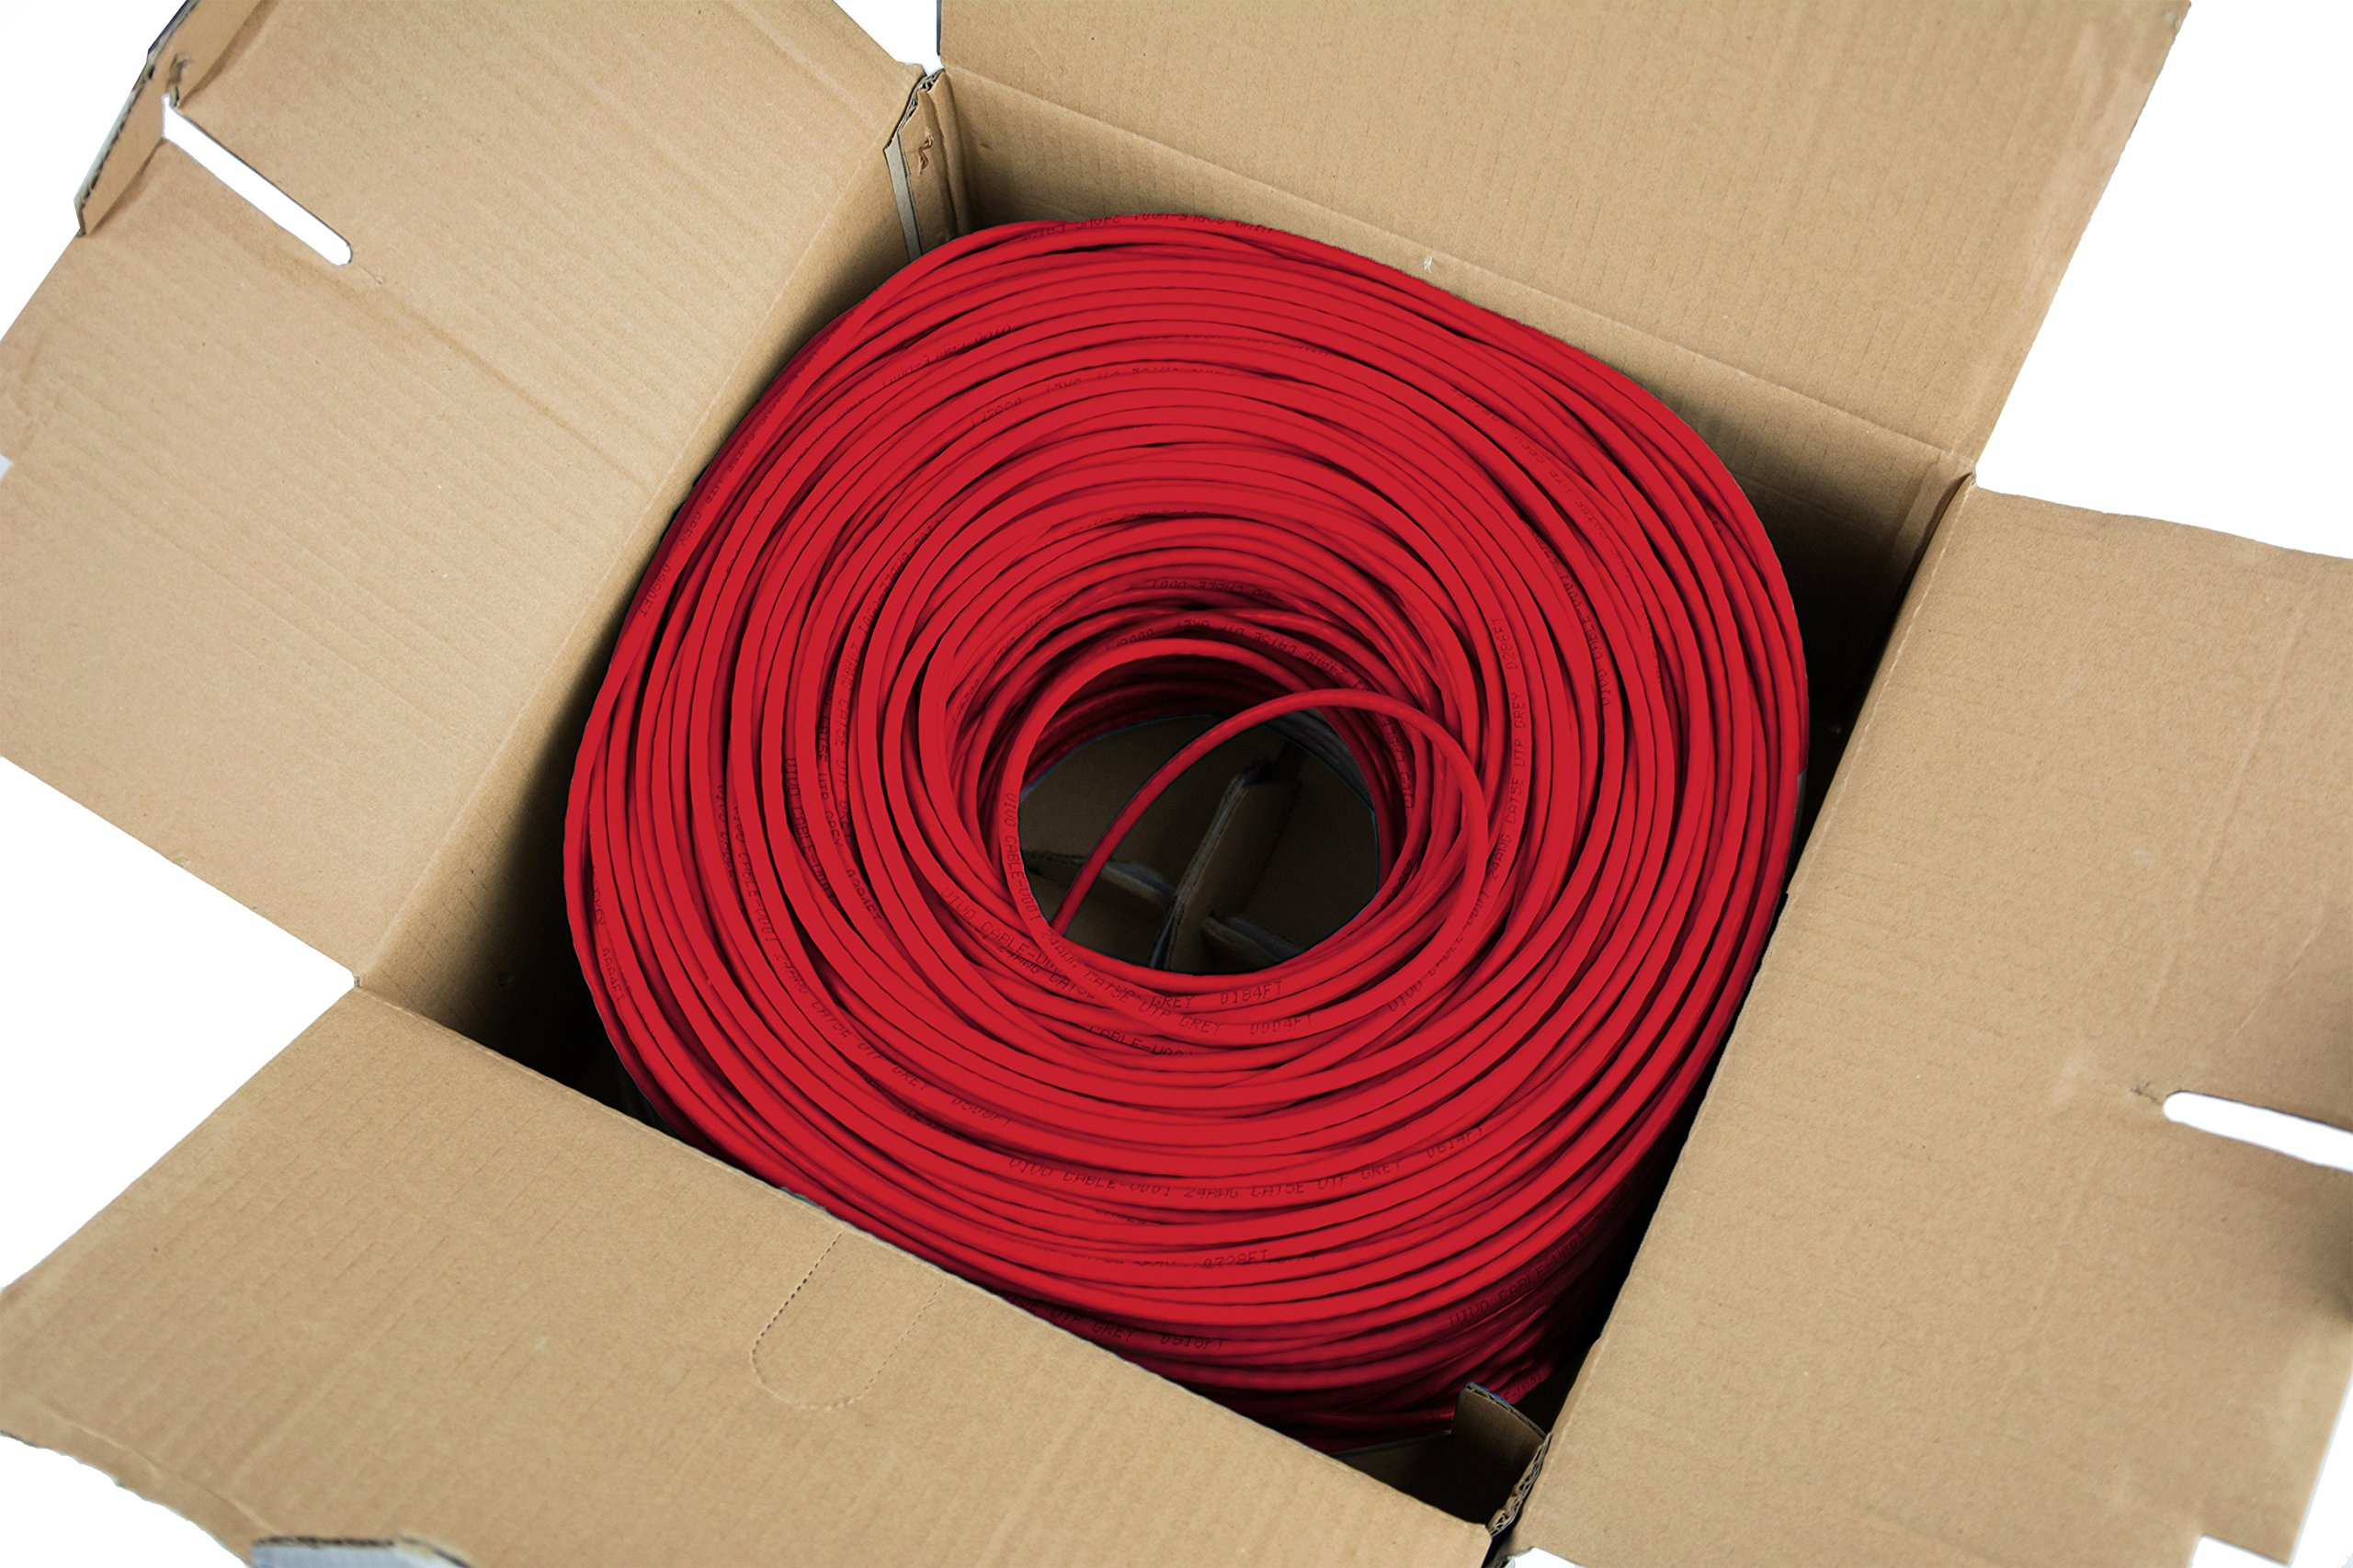 VIVO Red 1,000 ft bulk Cat5e Ethernet Cable/Wire UTP Pull Box 1,000ft Cat-5e Style (CABLE-V001R) by VIVO (Image #2)